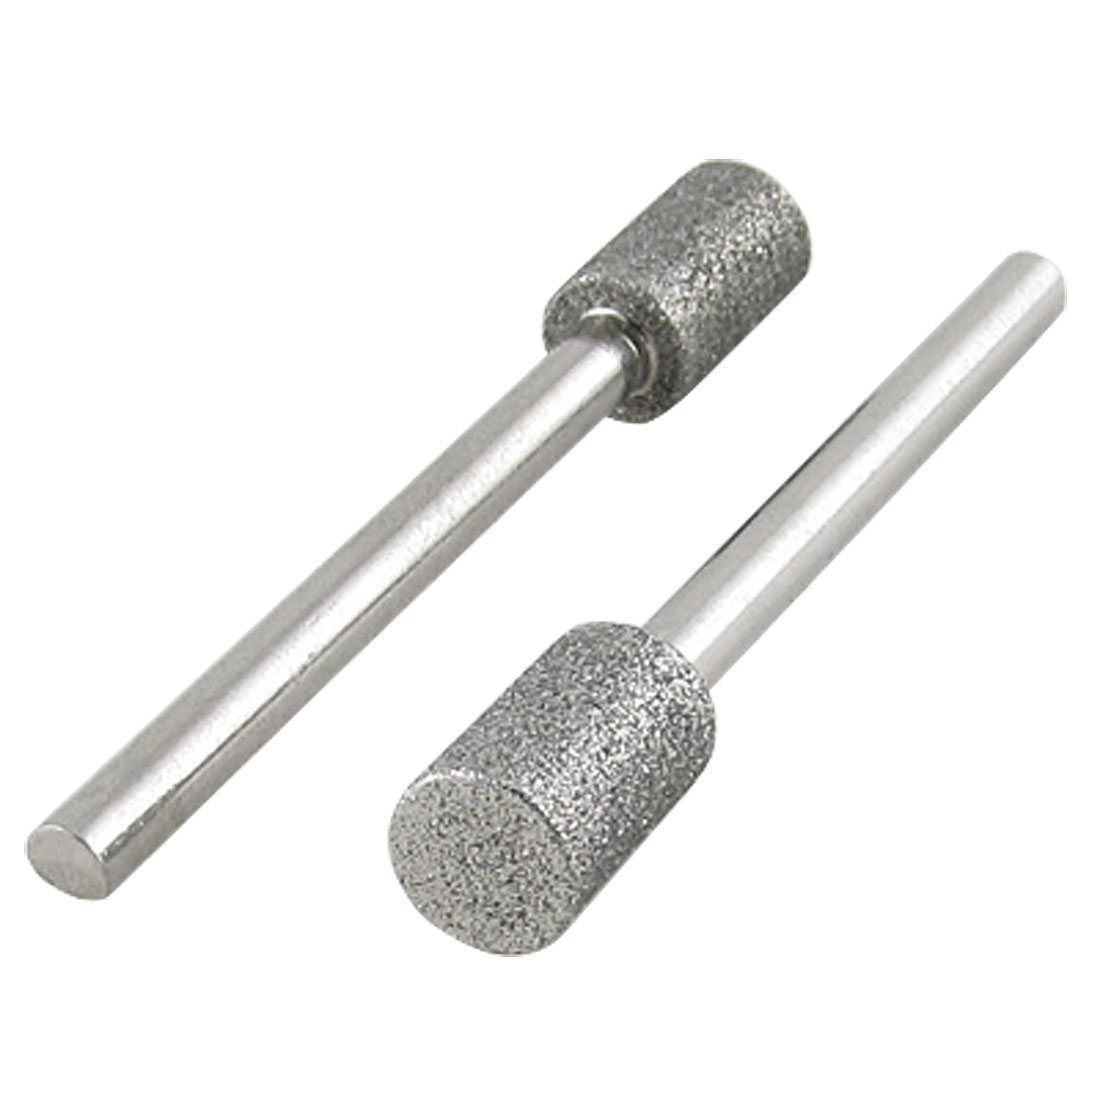 2 Pcs Electric Nail File Drill Small Prepper Diamond Barrel Bits 3 x 6mm